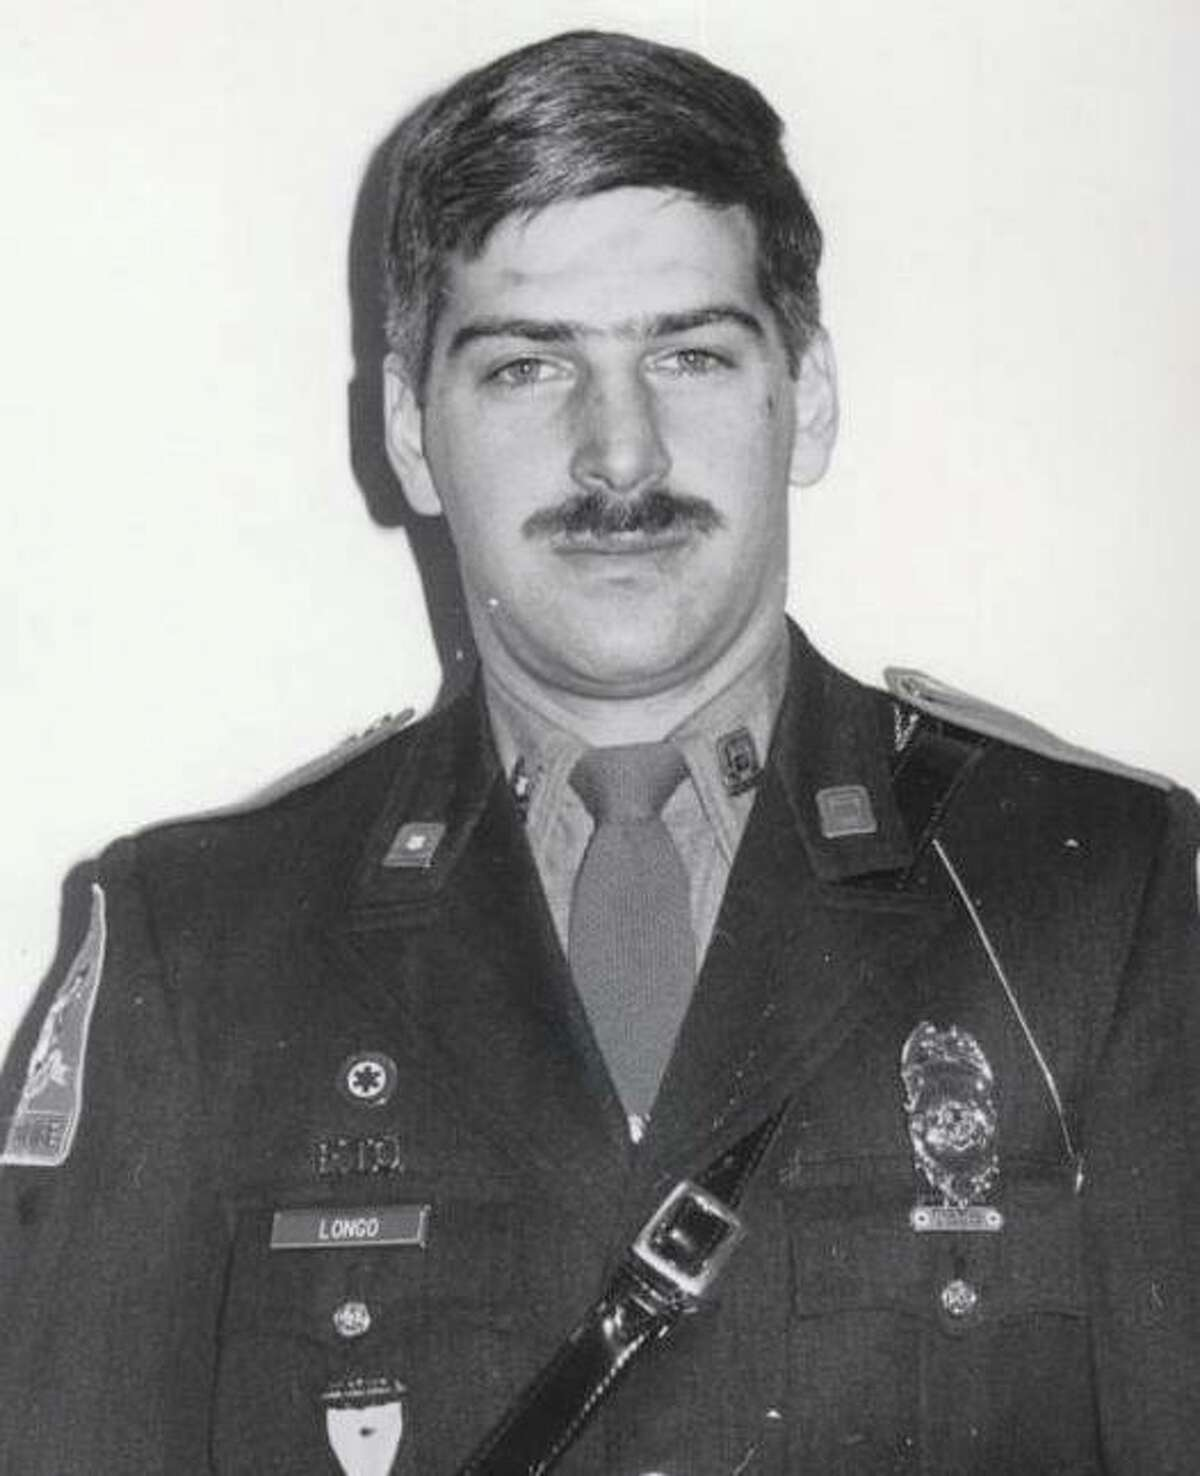 """Retired Connecticut State Police Sgt. William """"Billy"""" Longo died on July 16."""